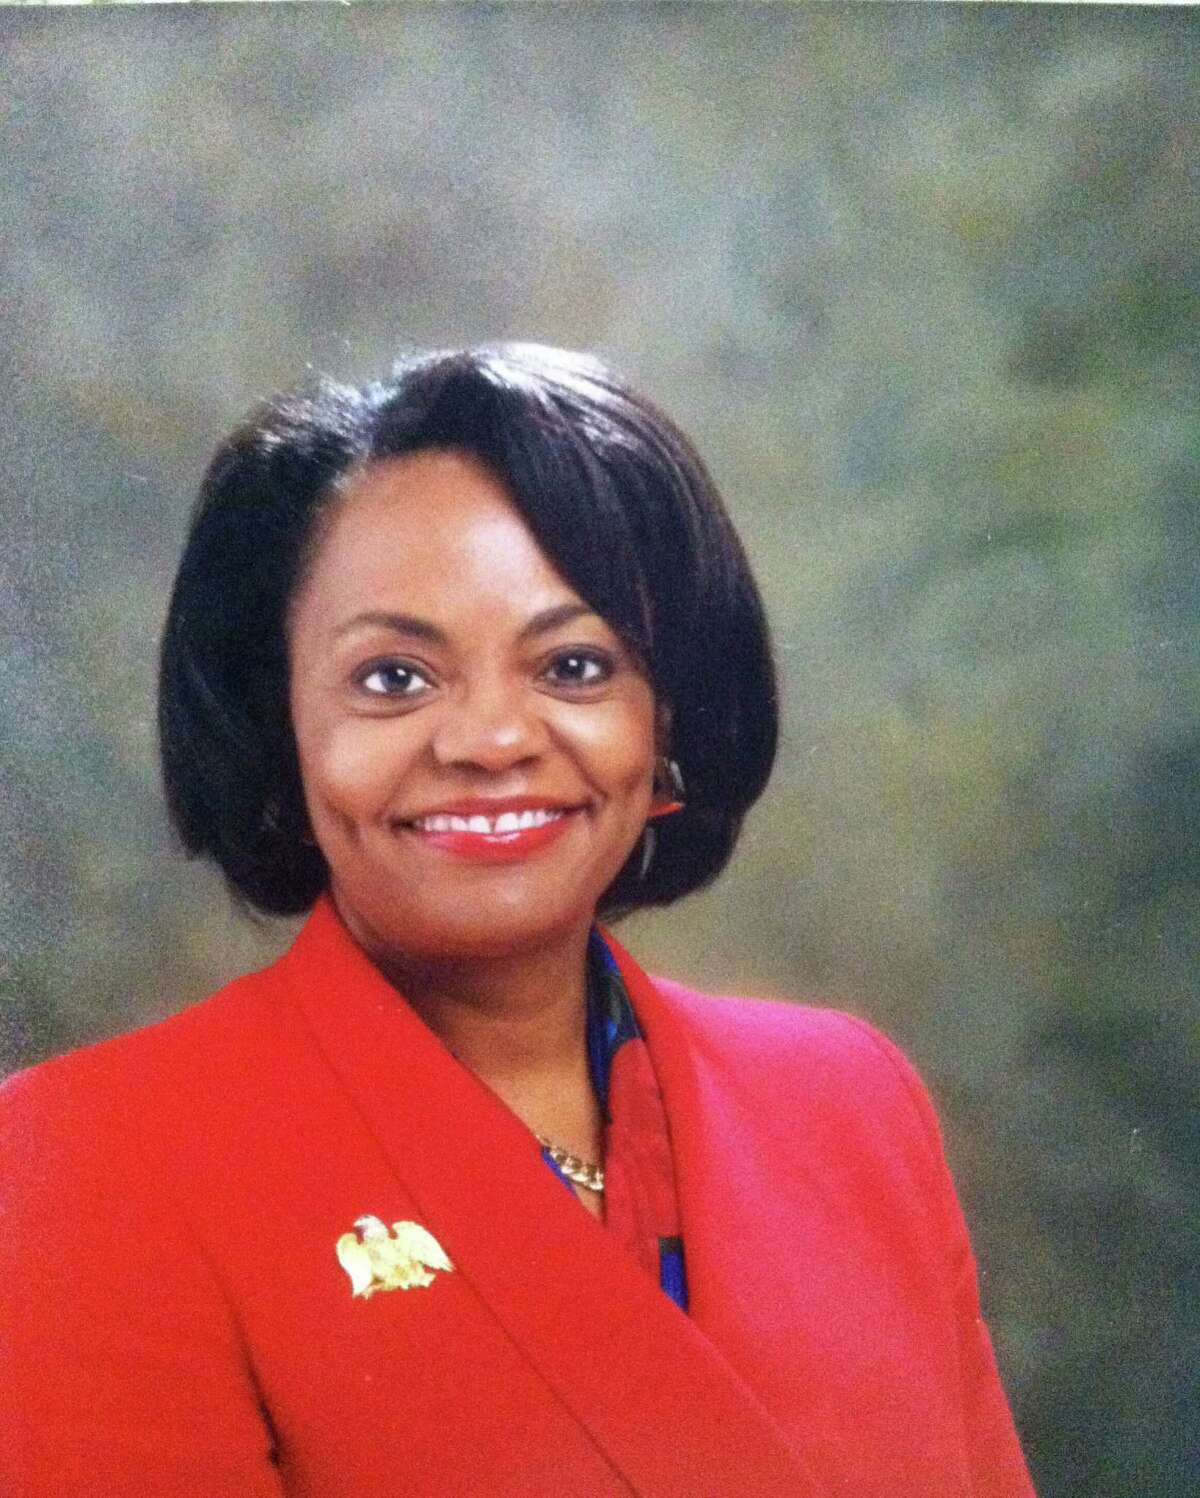 Gaynelle Griffin Jones the first African-American woman appointed by President Bill Clinton in 1993 as a United States Attorney for the Southern District of Texas, Has died the 64-year-old. The Houstonian was also the first African-American woman to serve on the First Court of Appeals in Texas.